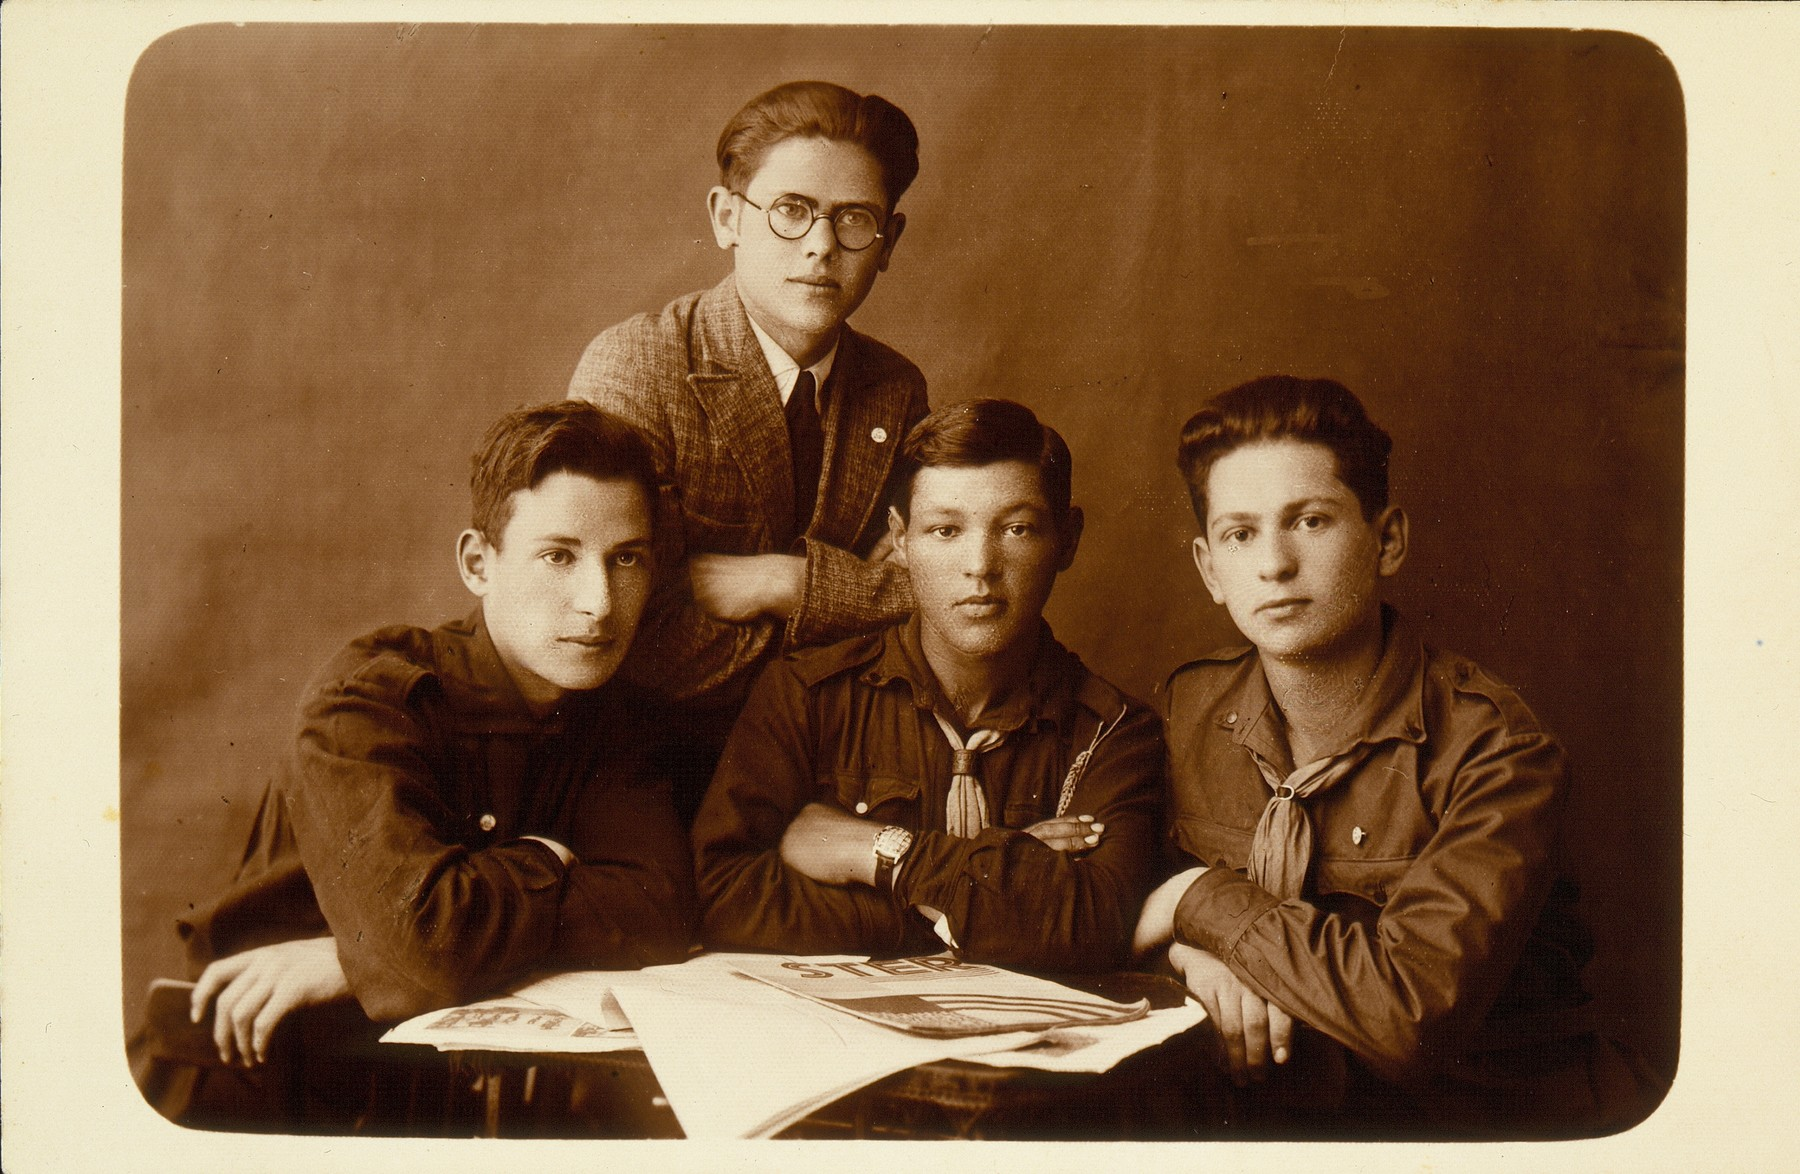 Four young members of the Betar youth movement gather around a table strewn with newspapers.   Faivl Glombocki (sitting in center), on his right is Dov Wilenski, on his left Hanan Polaczek, and a friend  (standing) from Chiznistock, Vilna. Dov immigrated to Palestine.  Faivl came to Argentina in 1930 with his family and later immigrated to Israel.